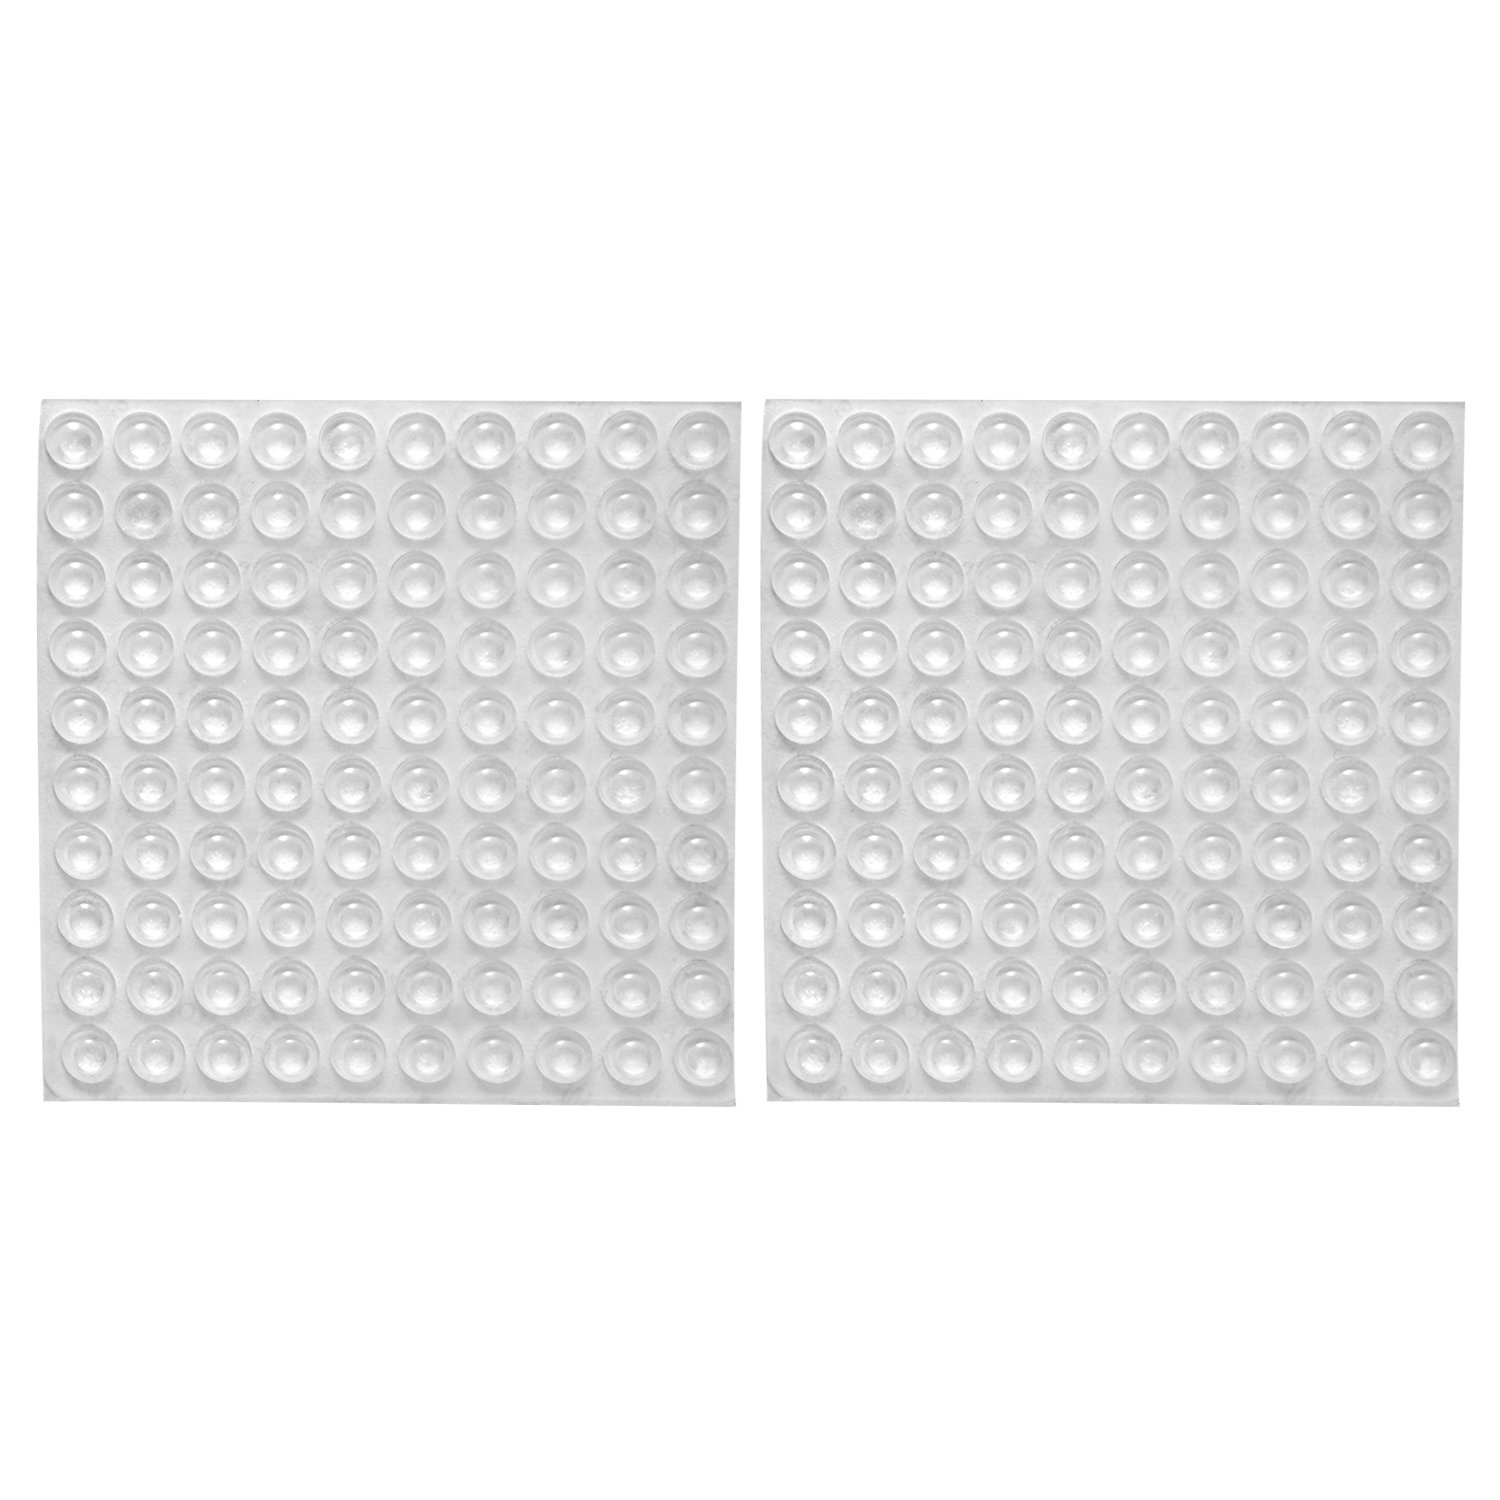 Clear Rubber Feet Adhesive Bumper Pads Self Stick Bumpers Sound ...